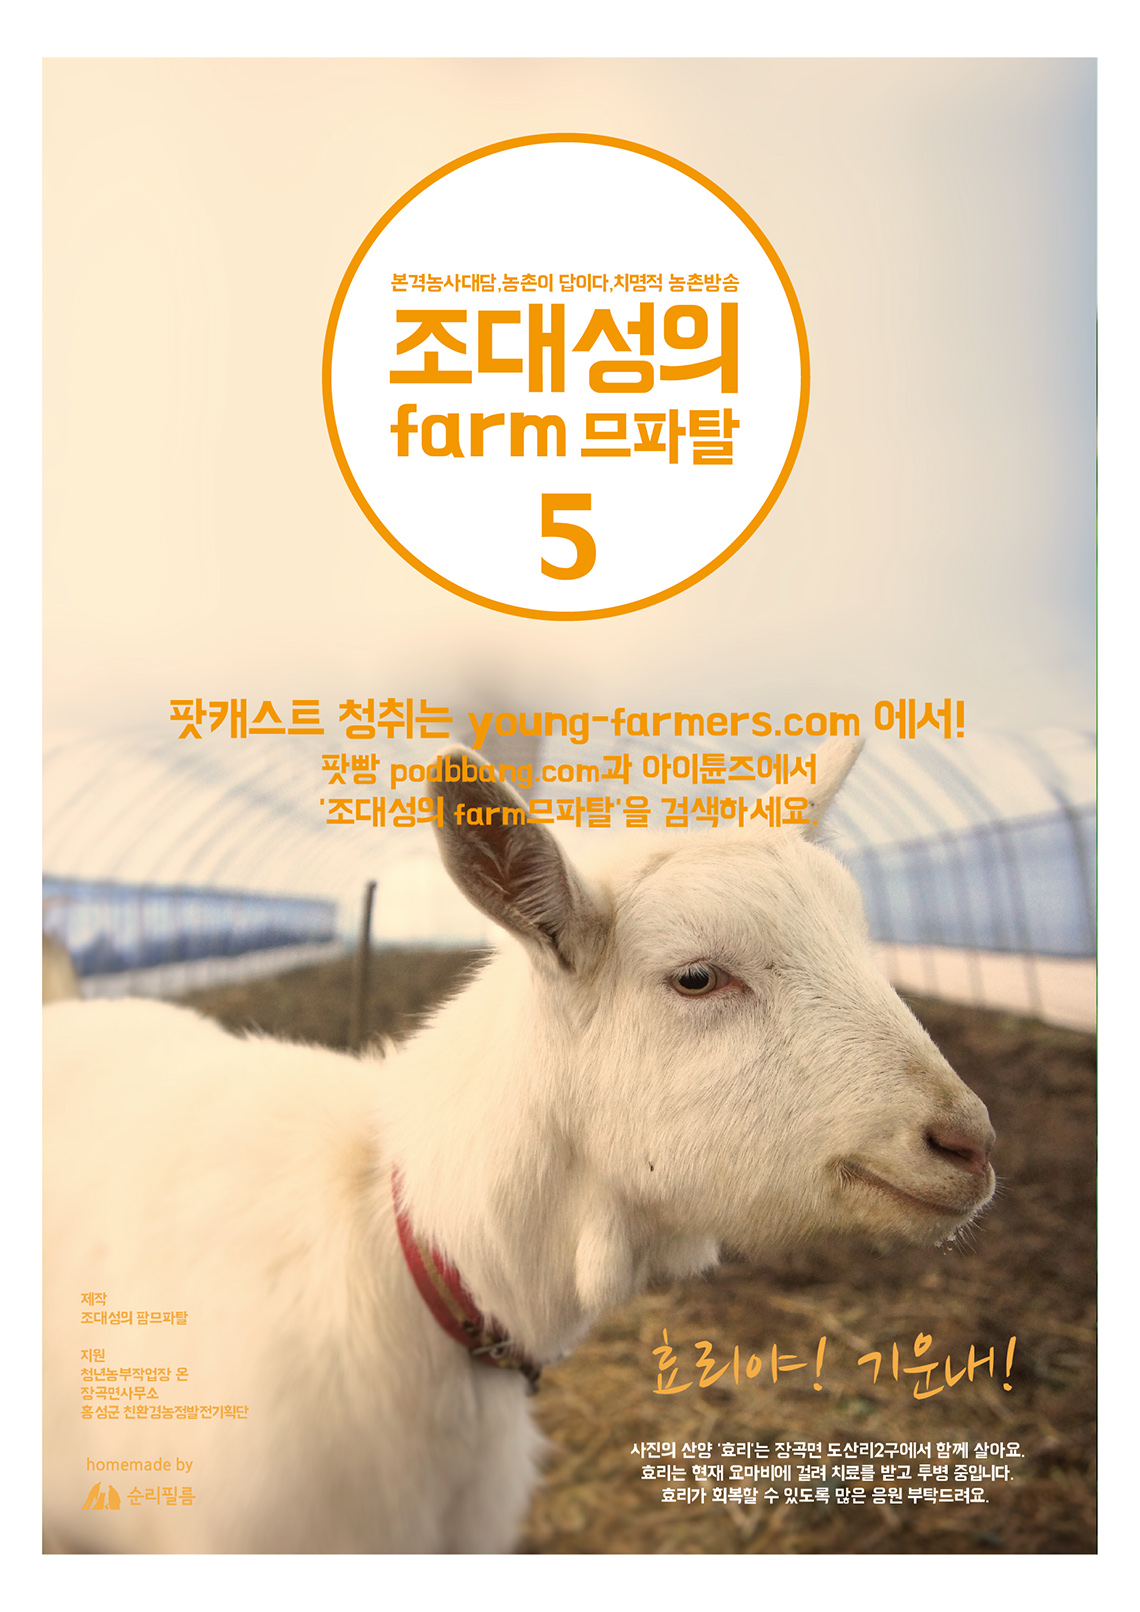 20150905_farmfatal05_podcast_poster